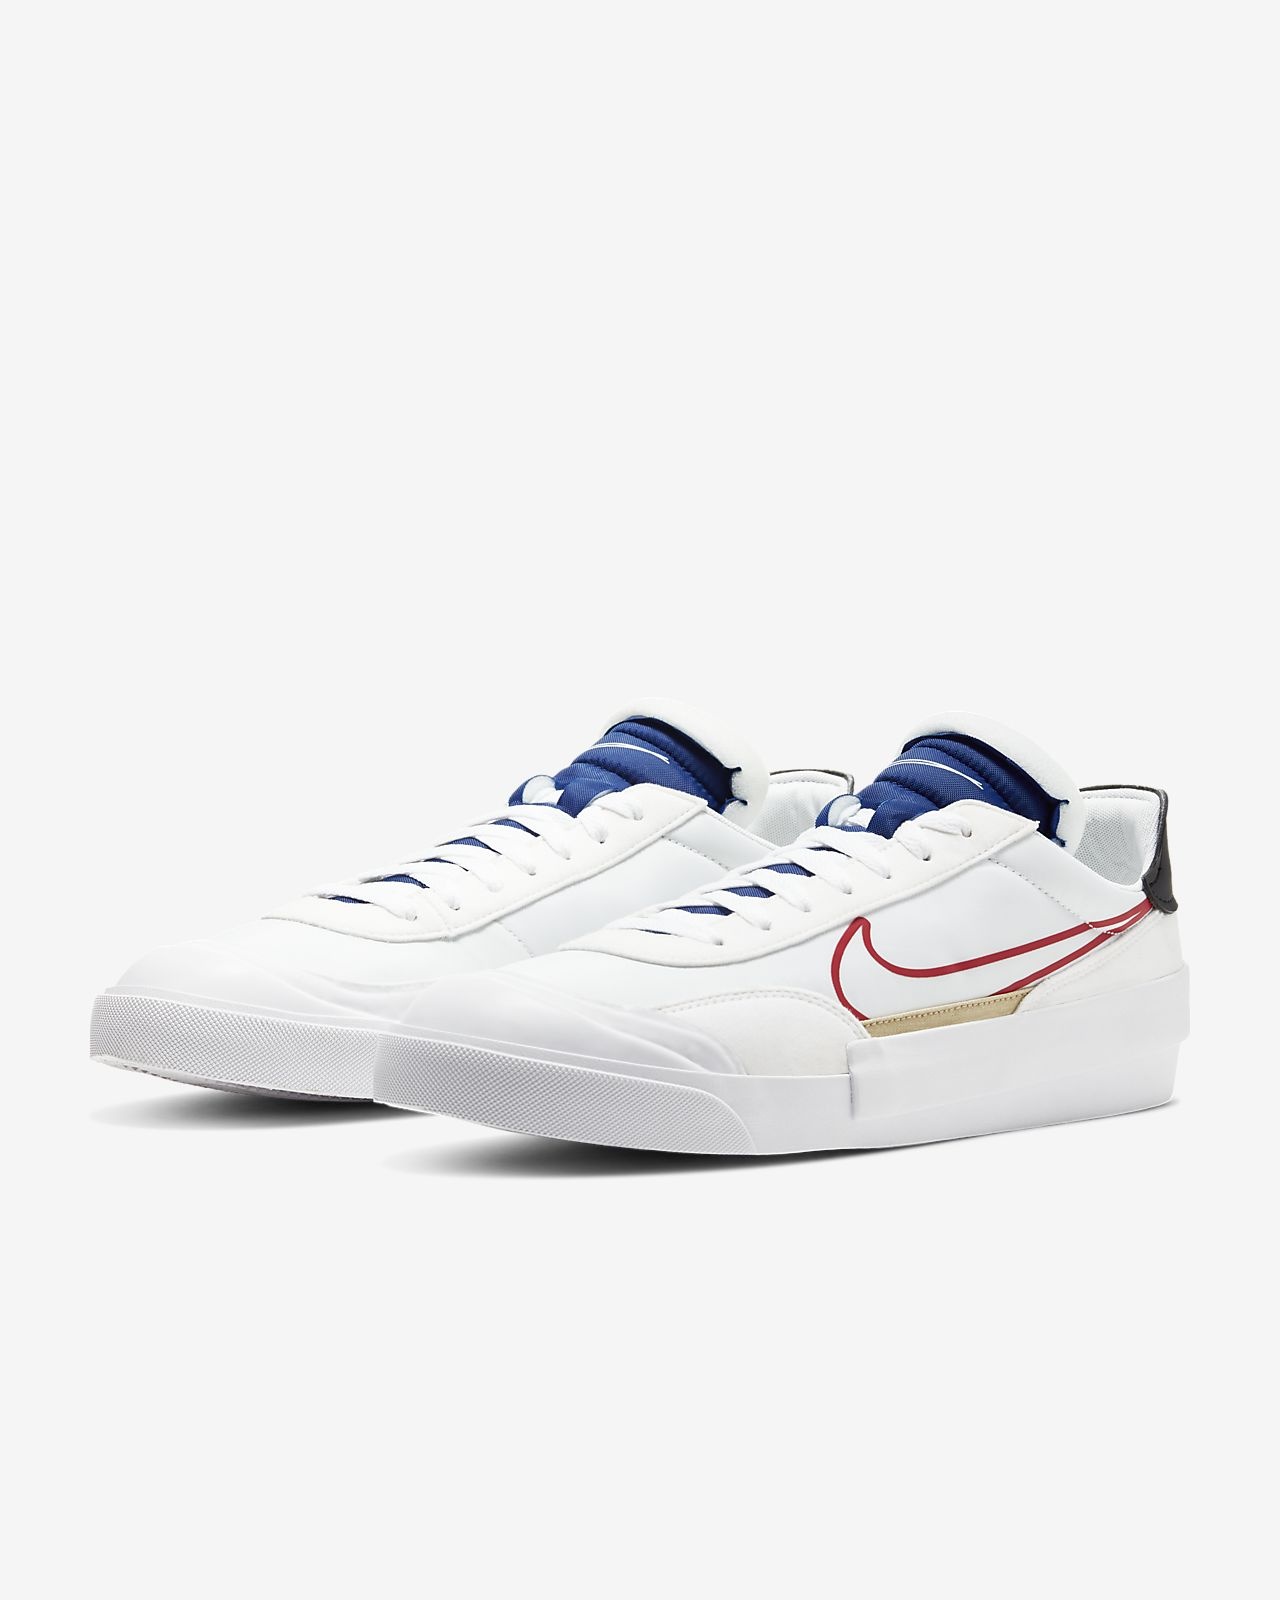 Nike Drop Type Shoe